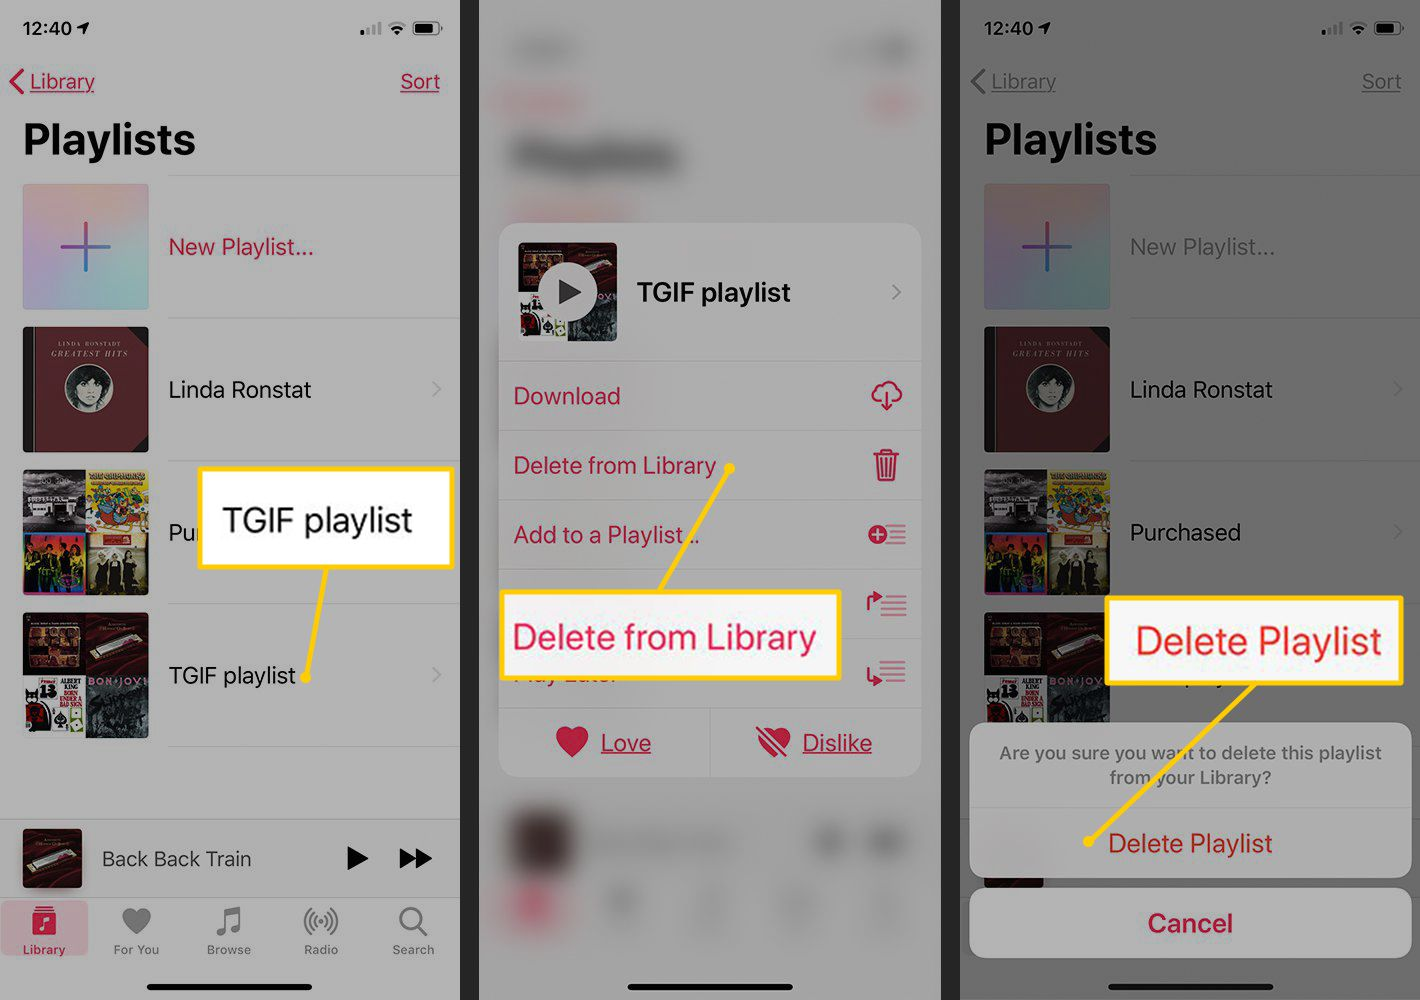 Playlist, Delete from Library, Delete Playlist